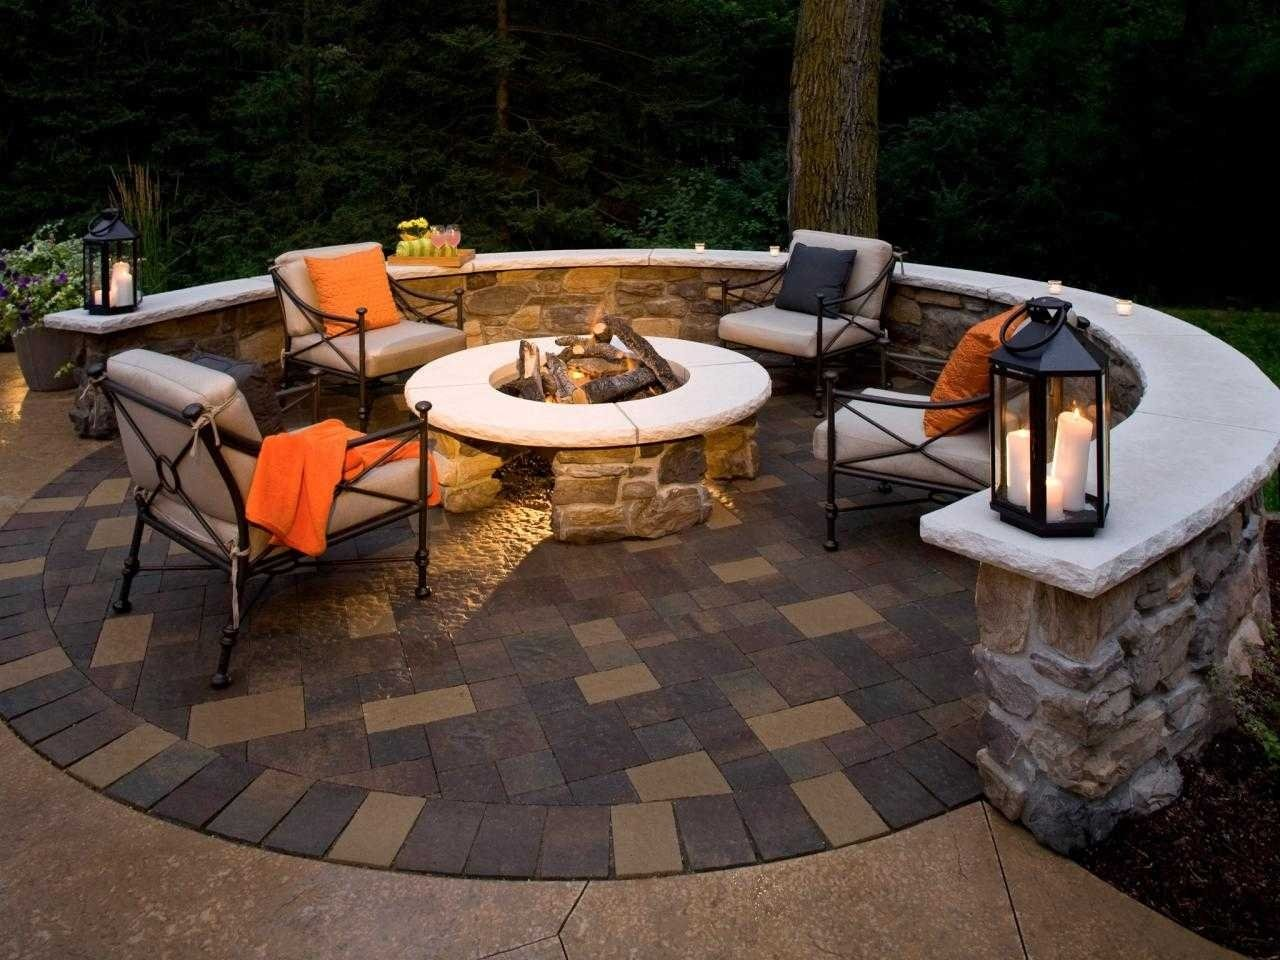 10 Perfect Patio Design Ideas With Fire Pits backyard patio designs with fire pit ideas including beautiful small 2021